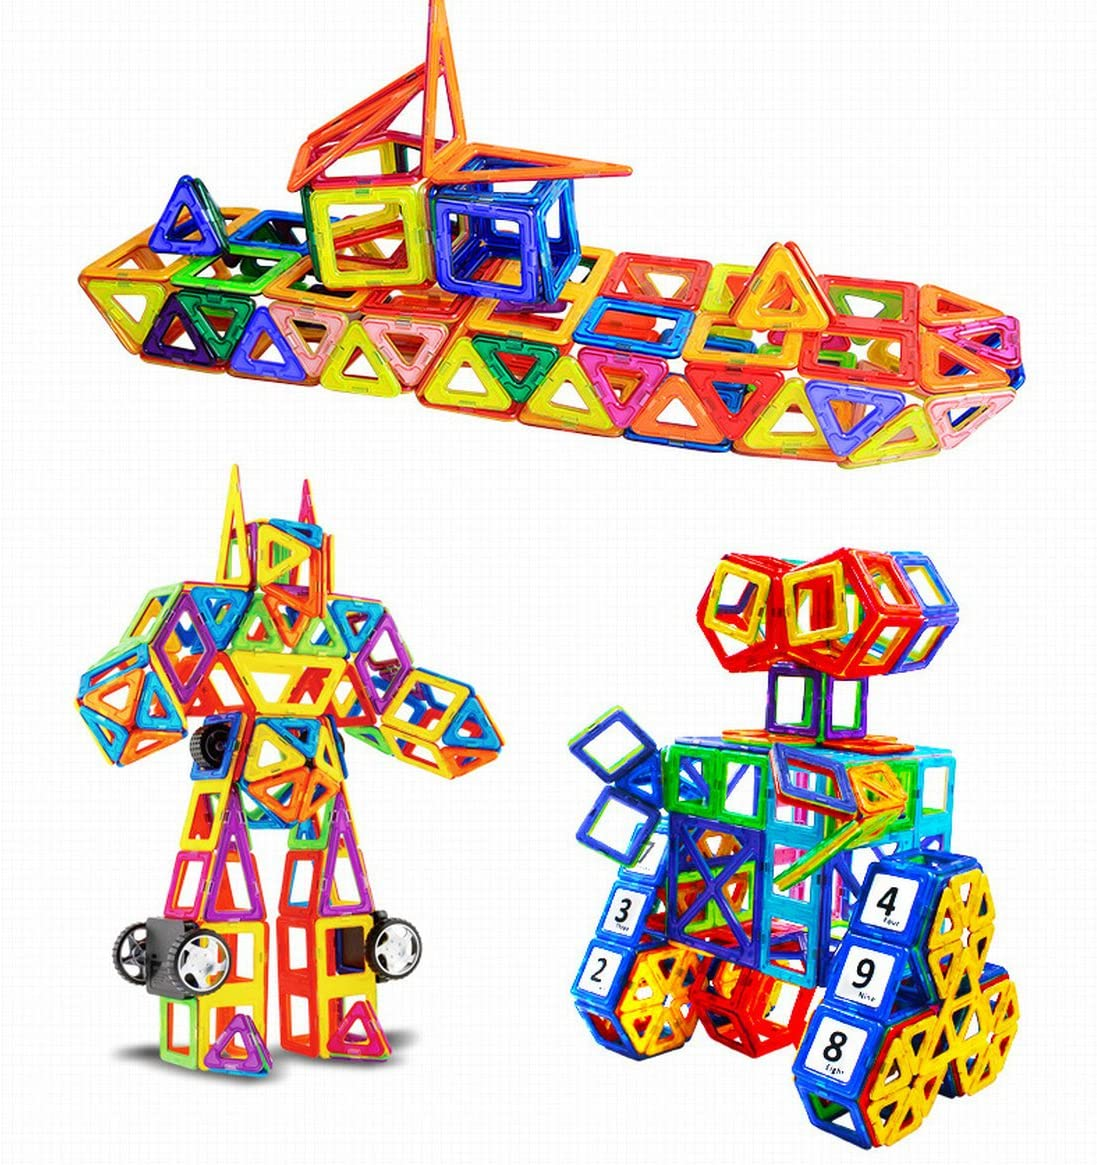 ZCOINS 141 Pieces Set Magnetic Building Blocks Toys with Wheels Educational Magnet Bricks Tiles Stacking Toy Kit